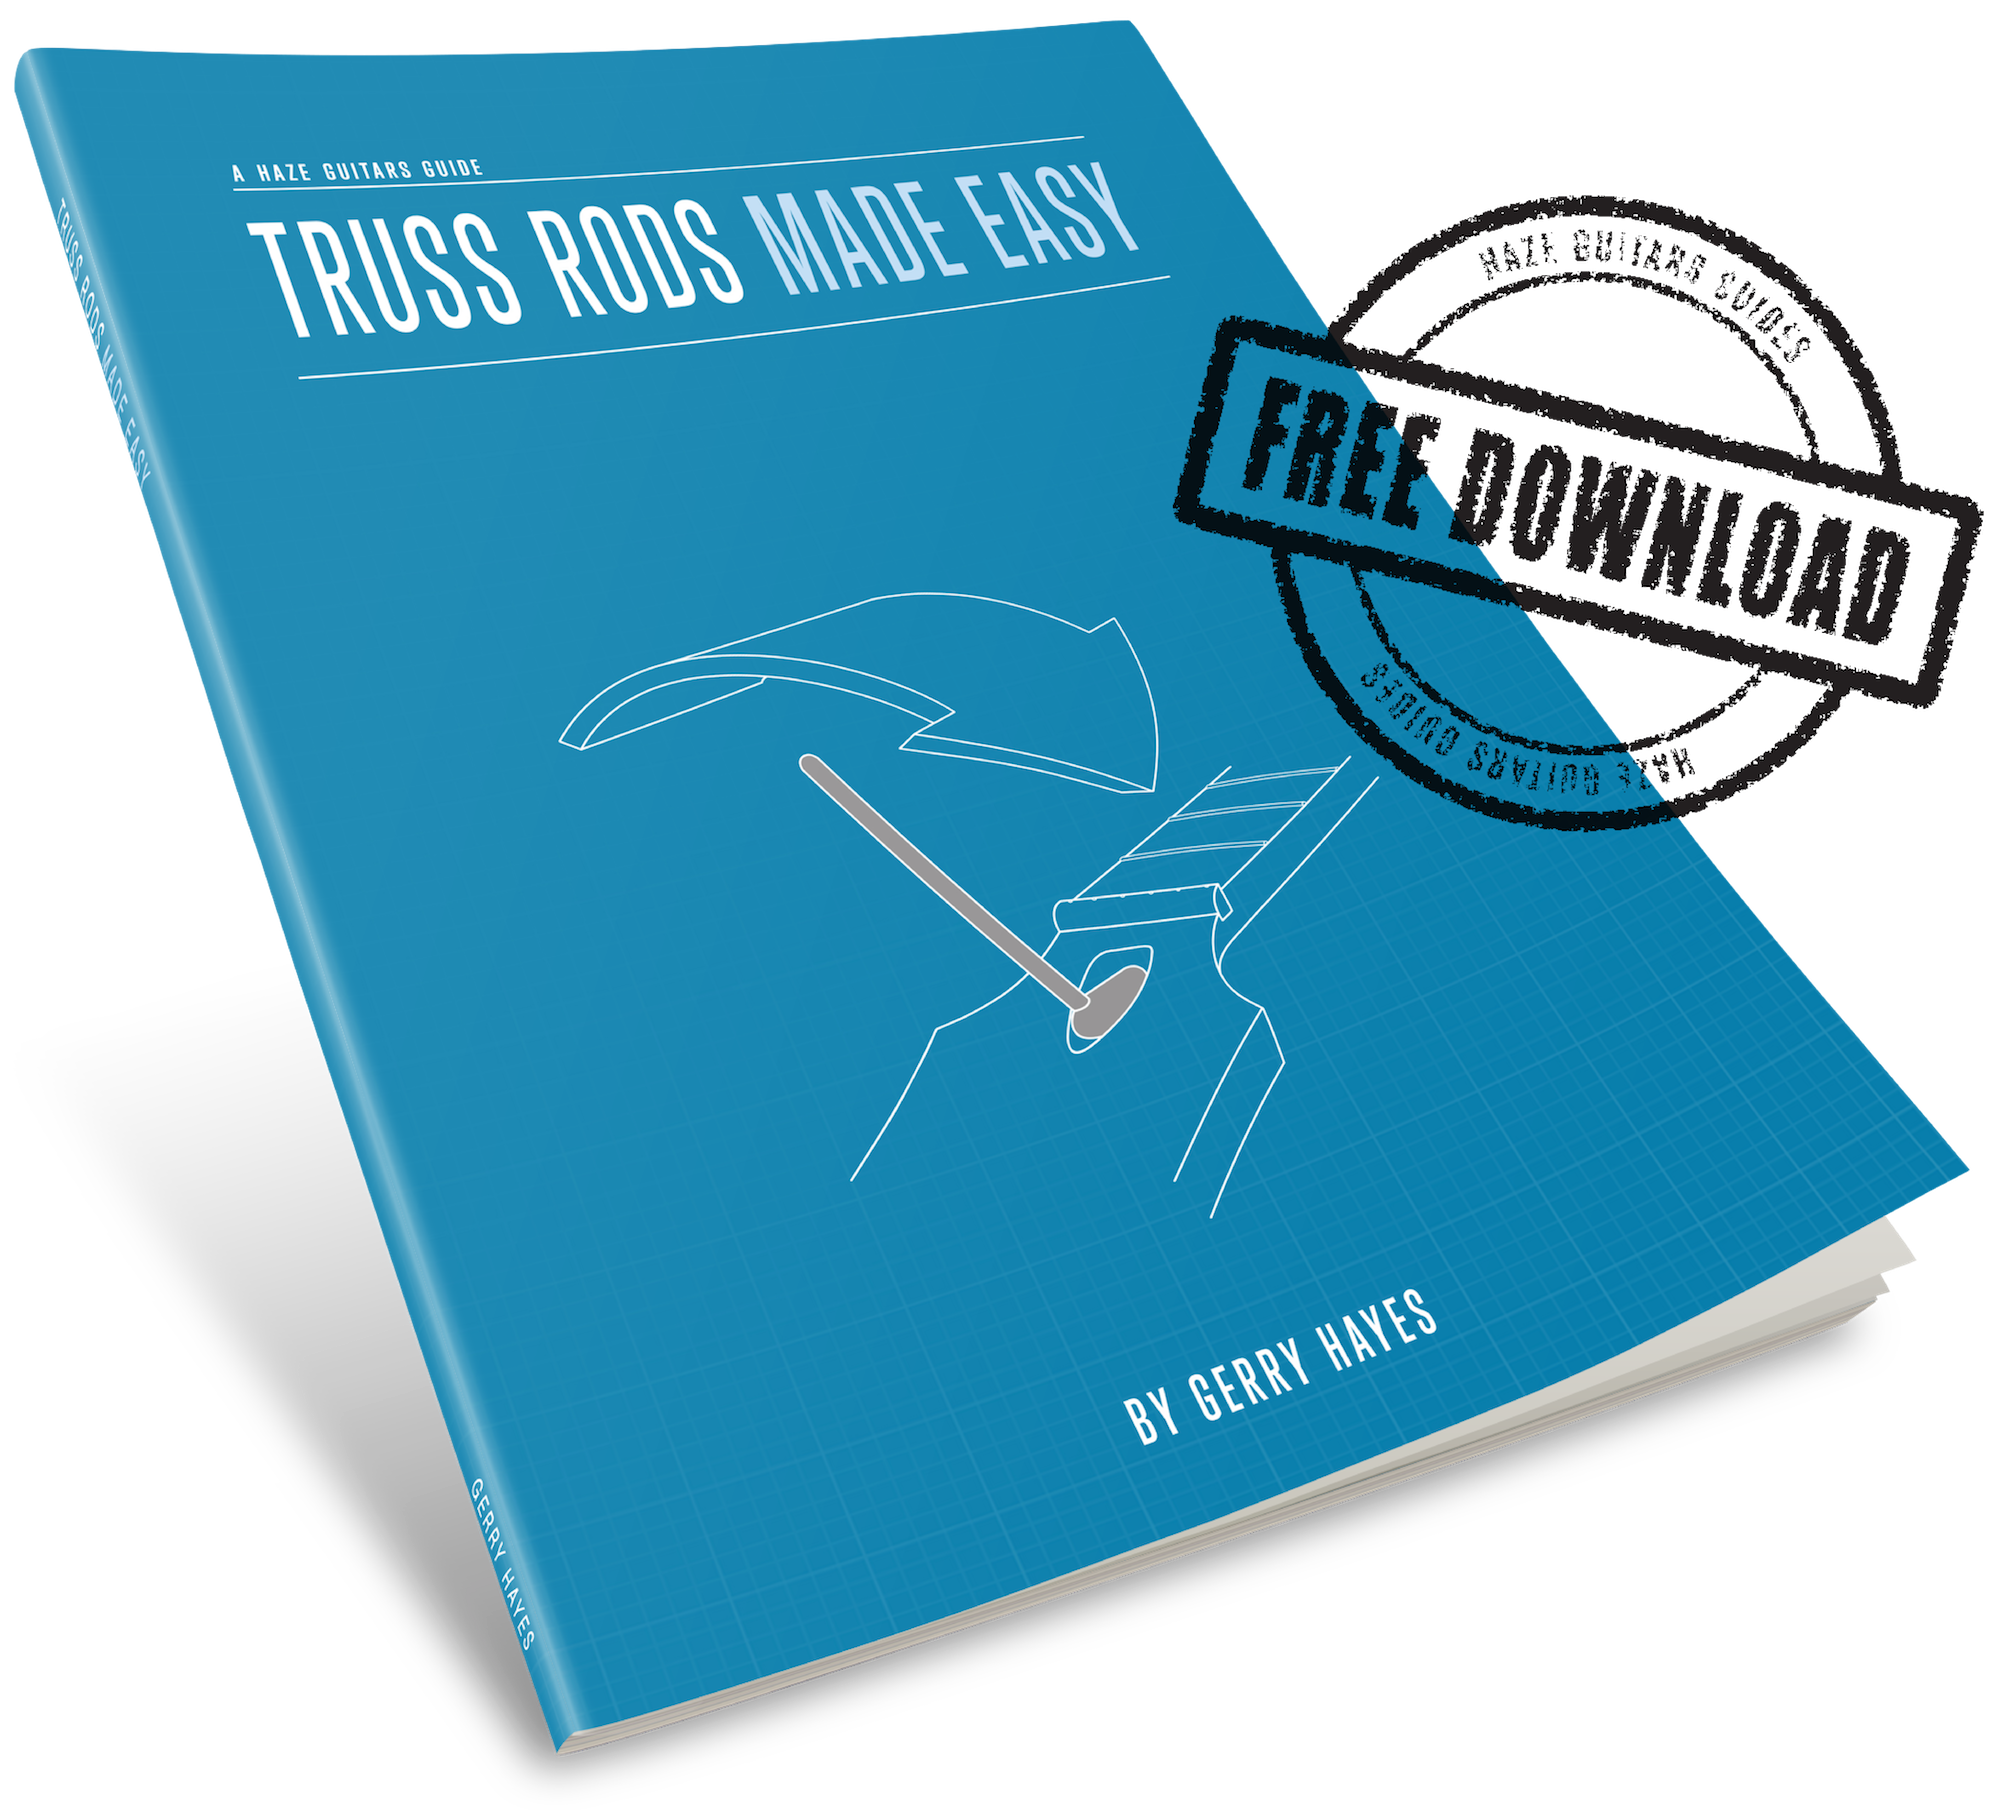 Truss Rods Made Easy - guide to understanding, measuring and adjusting neck relief and truss rods